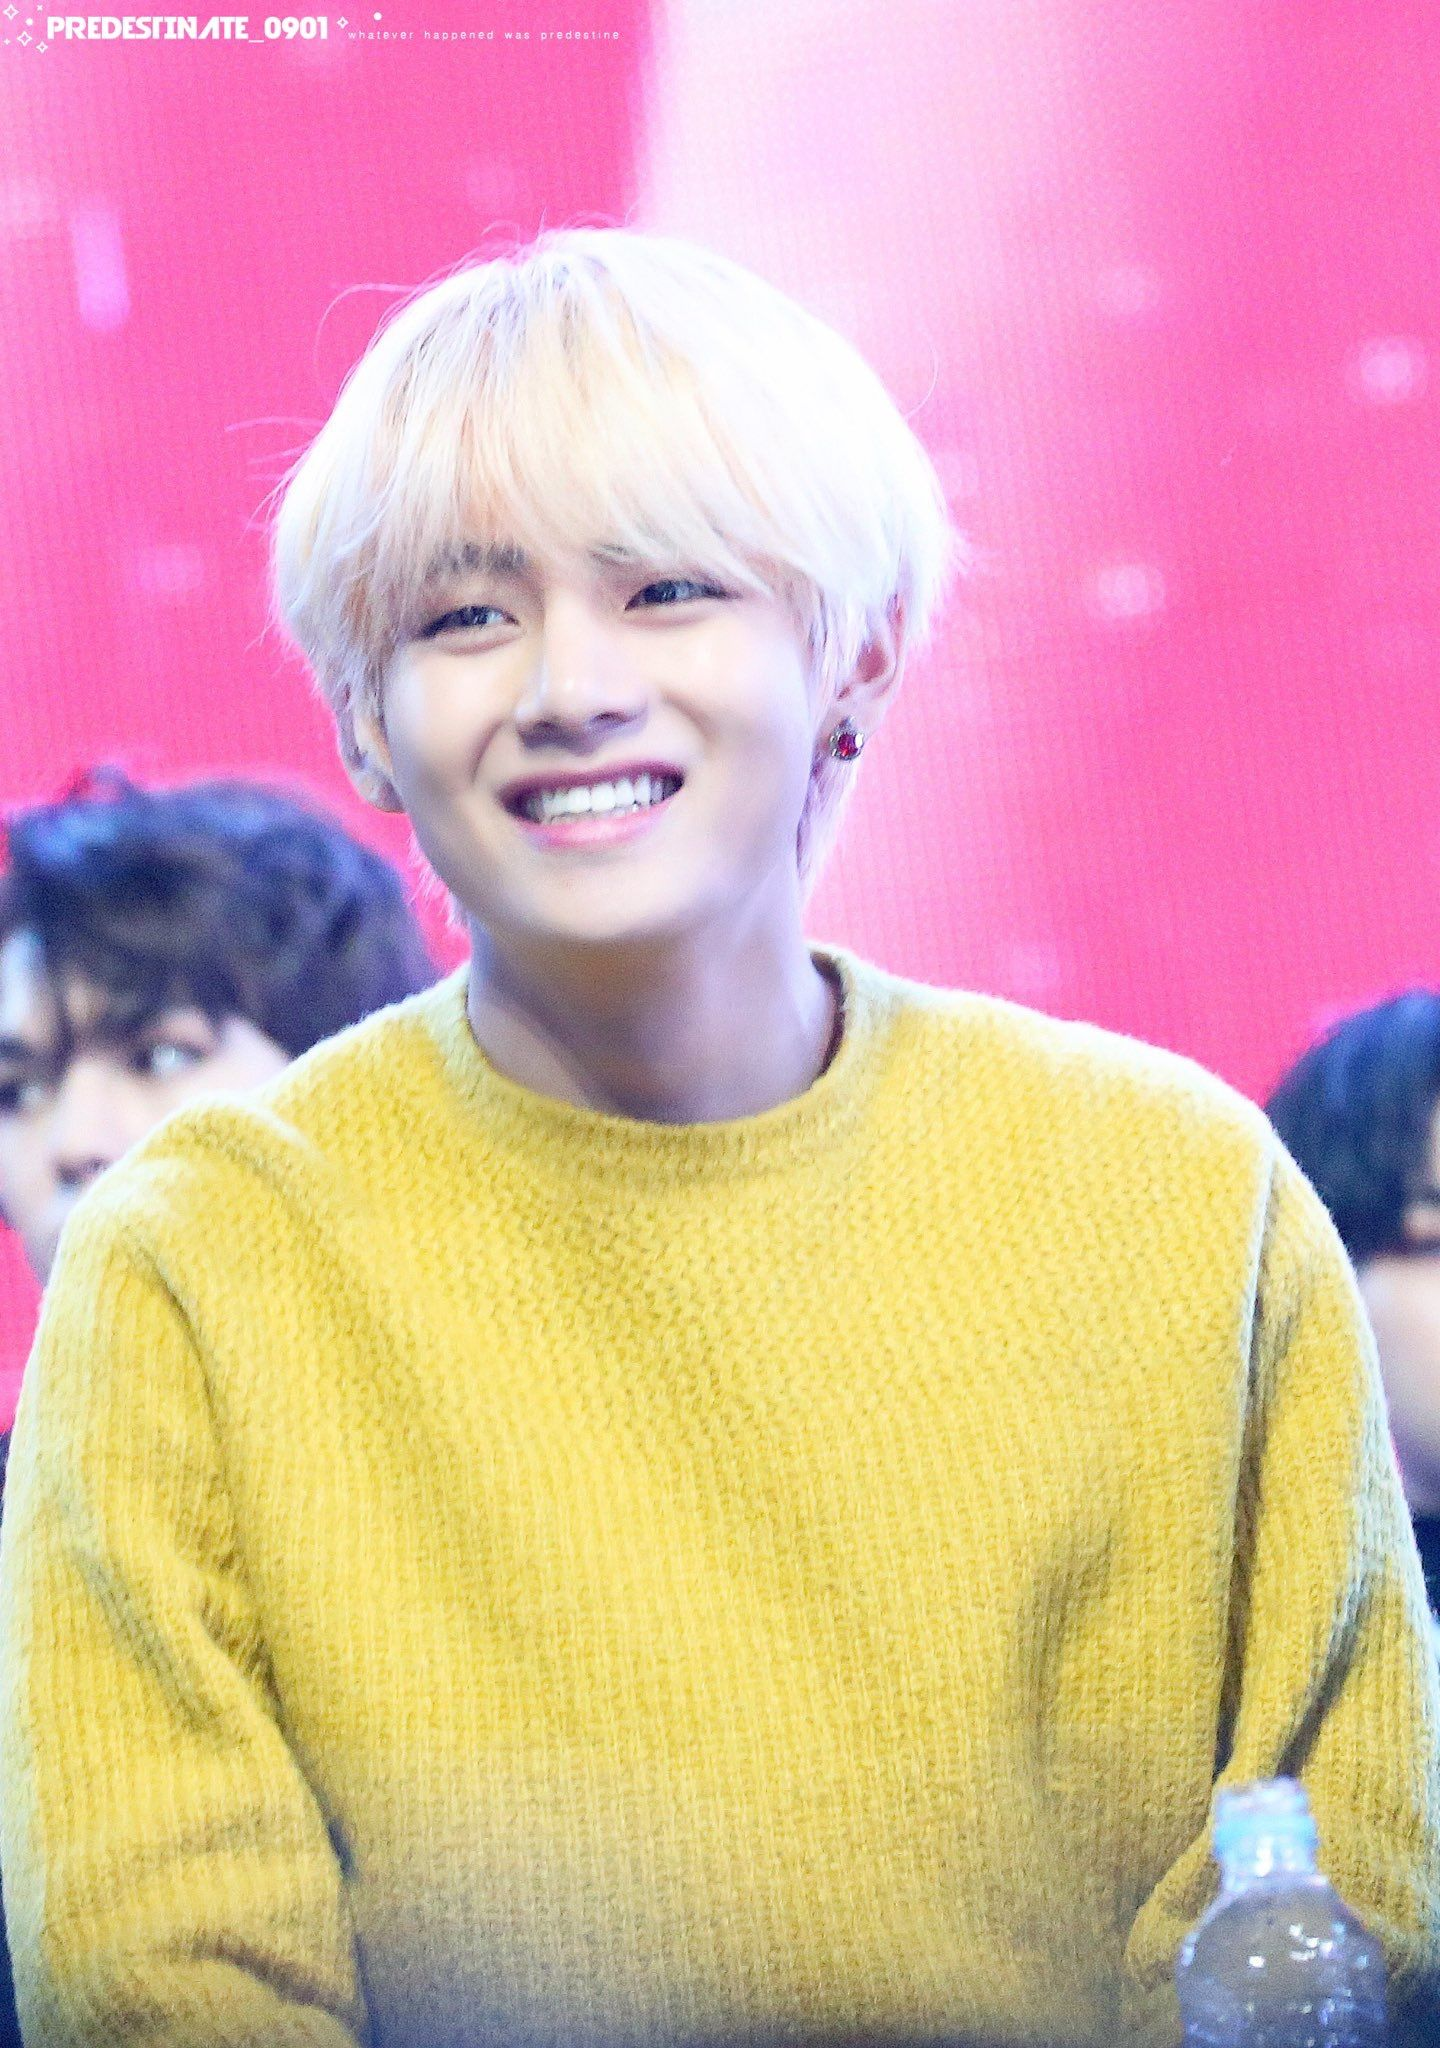 22 Times BTSs V Proved He Has The Most Adorable Box Smile